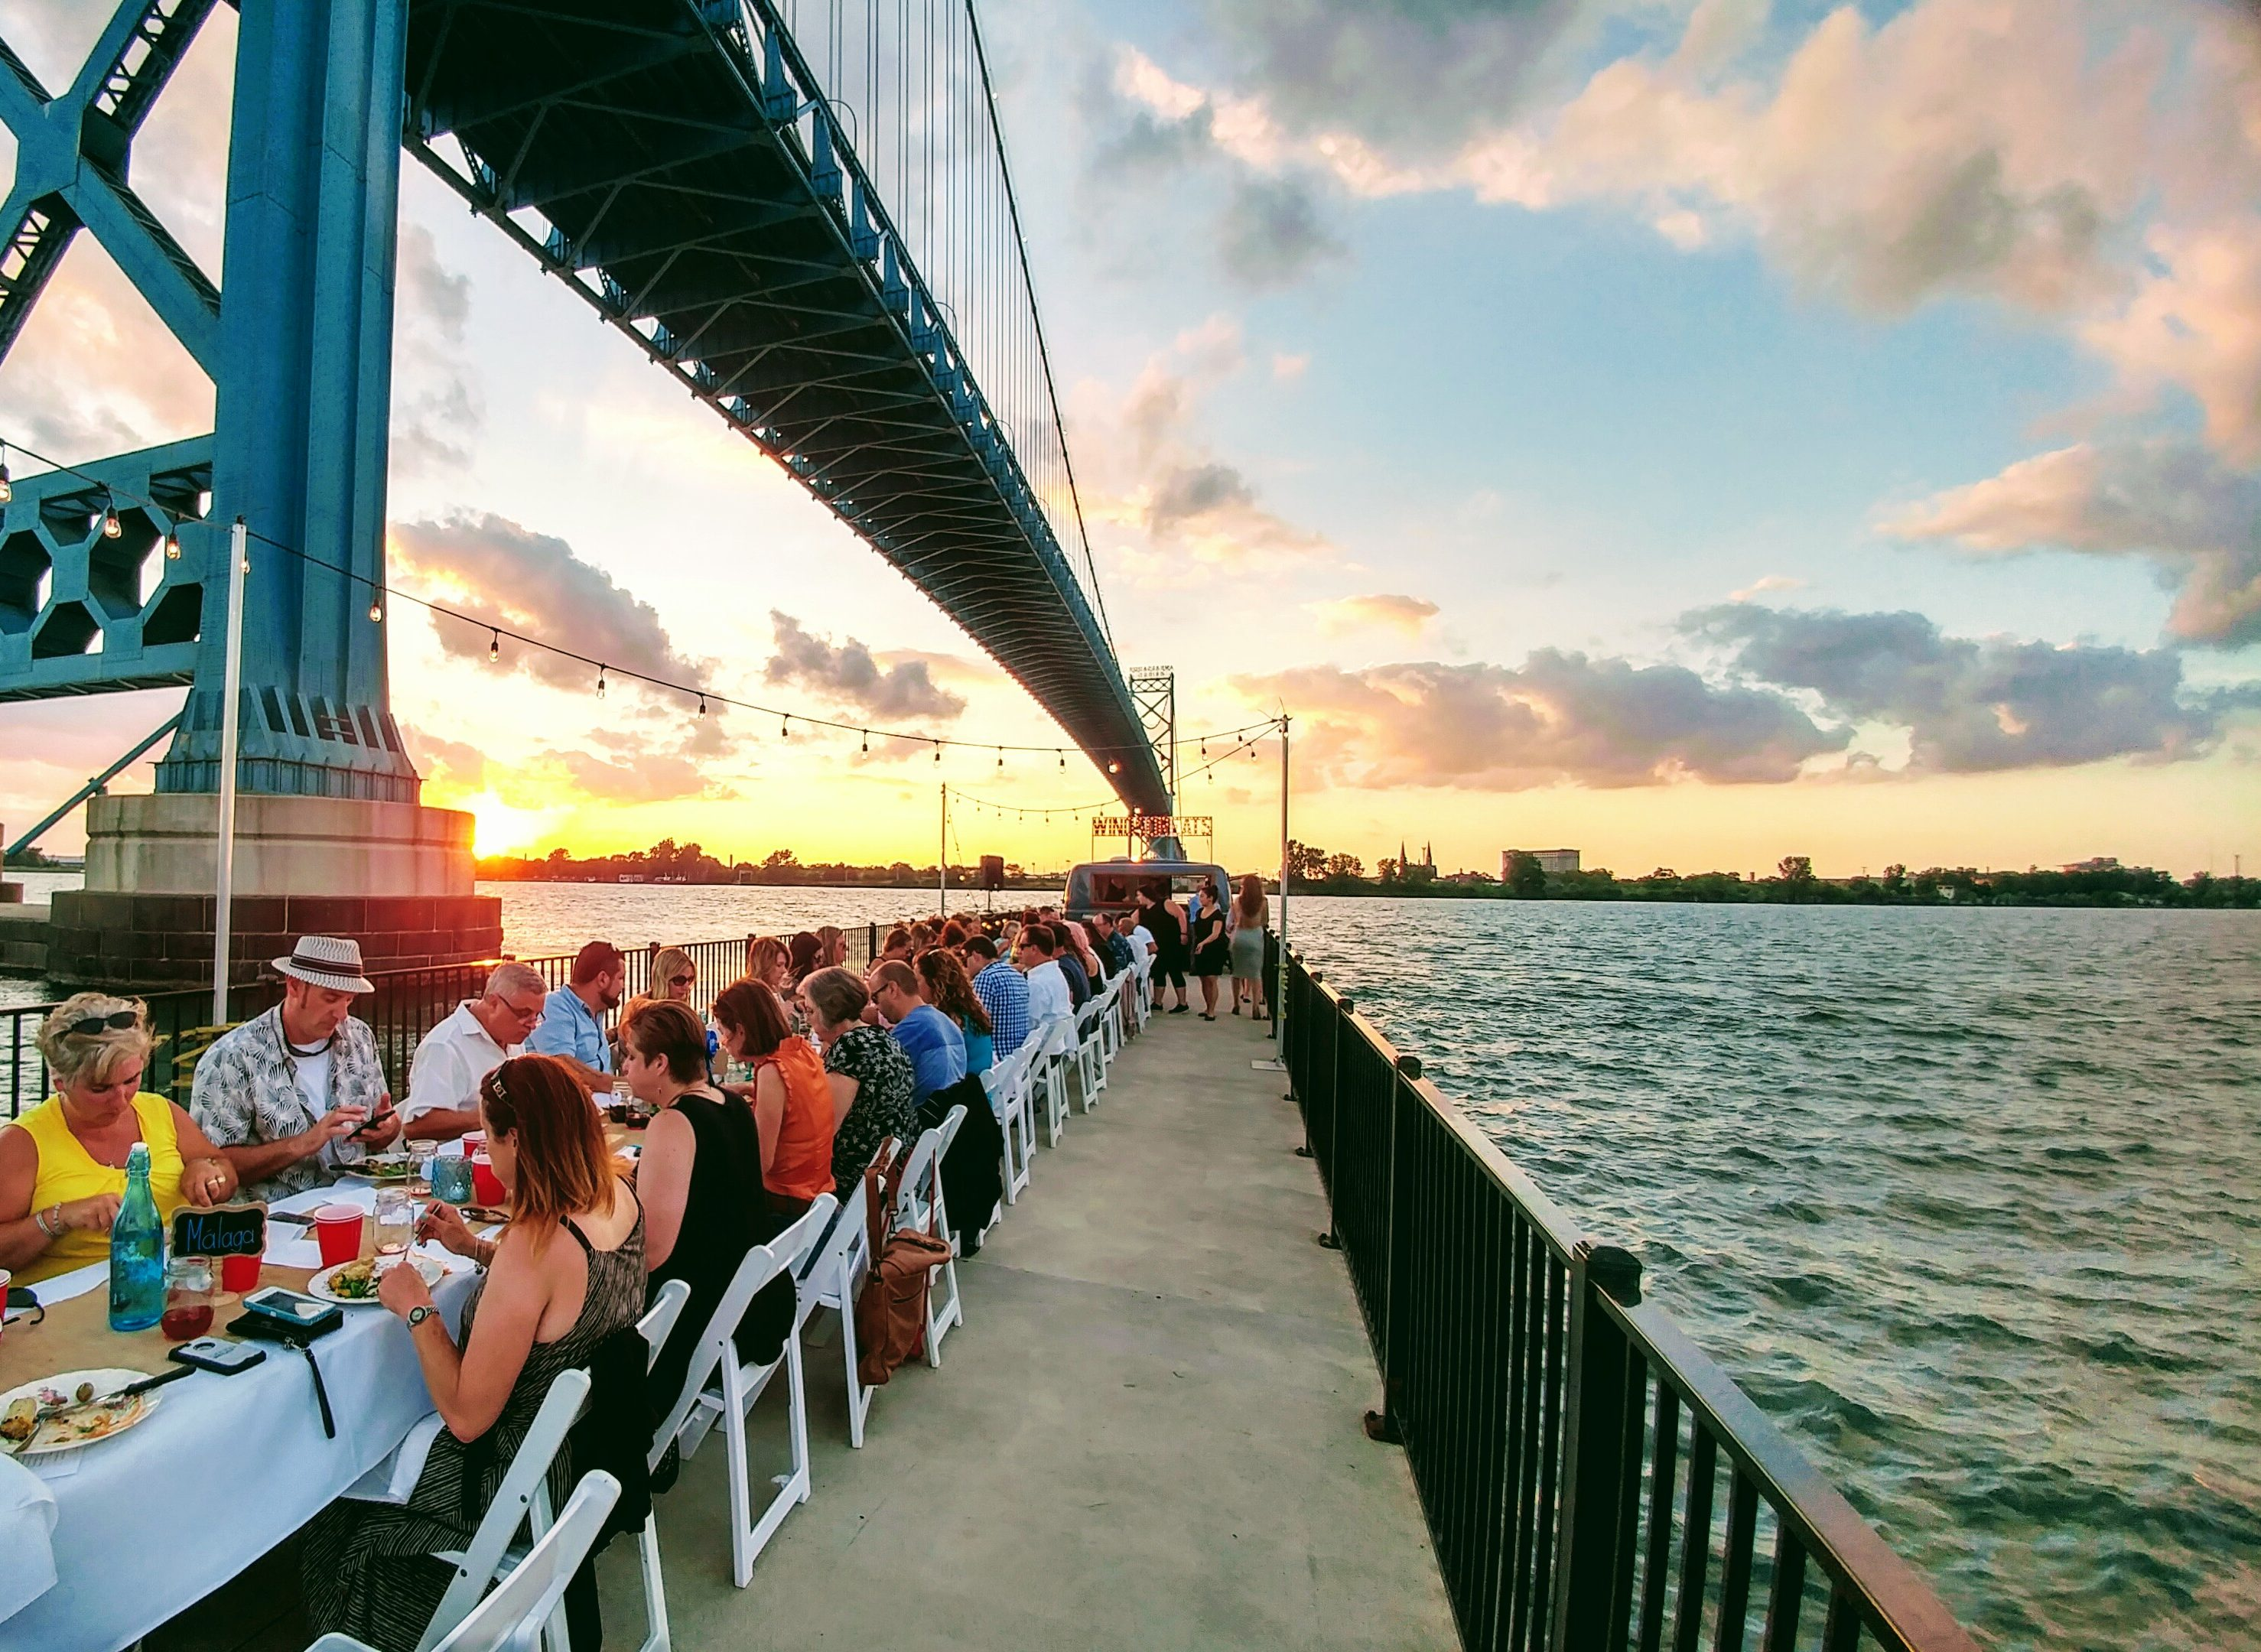 Dinner on a Pier has become an anticipated annual event.